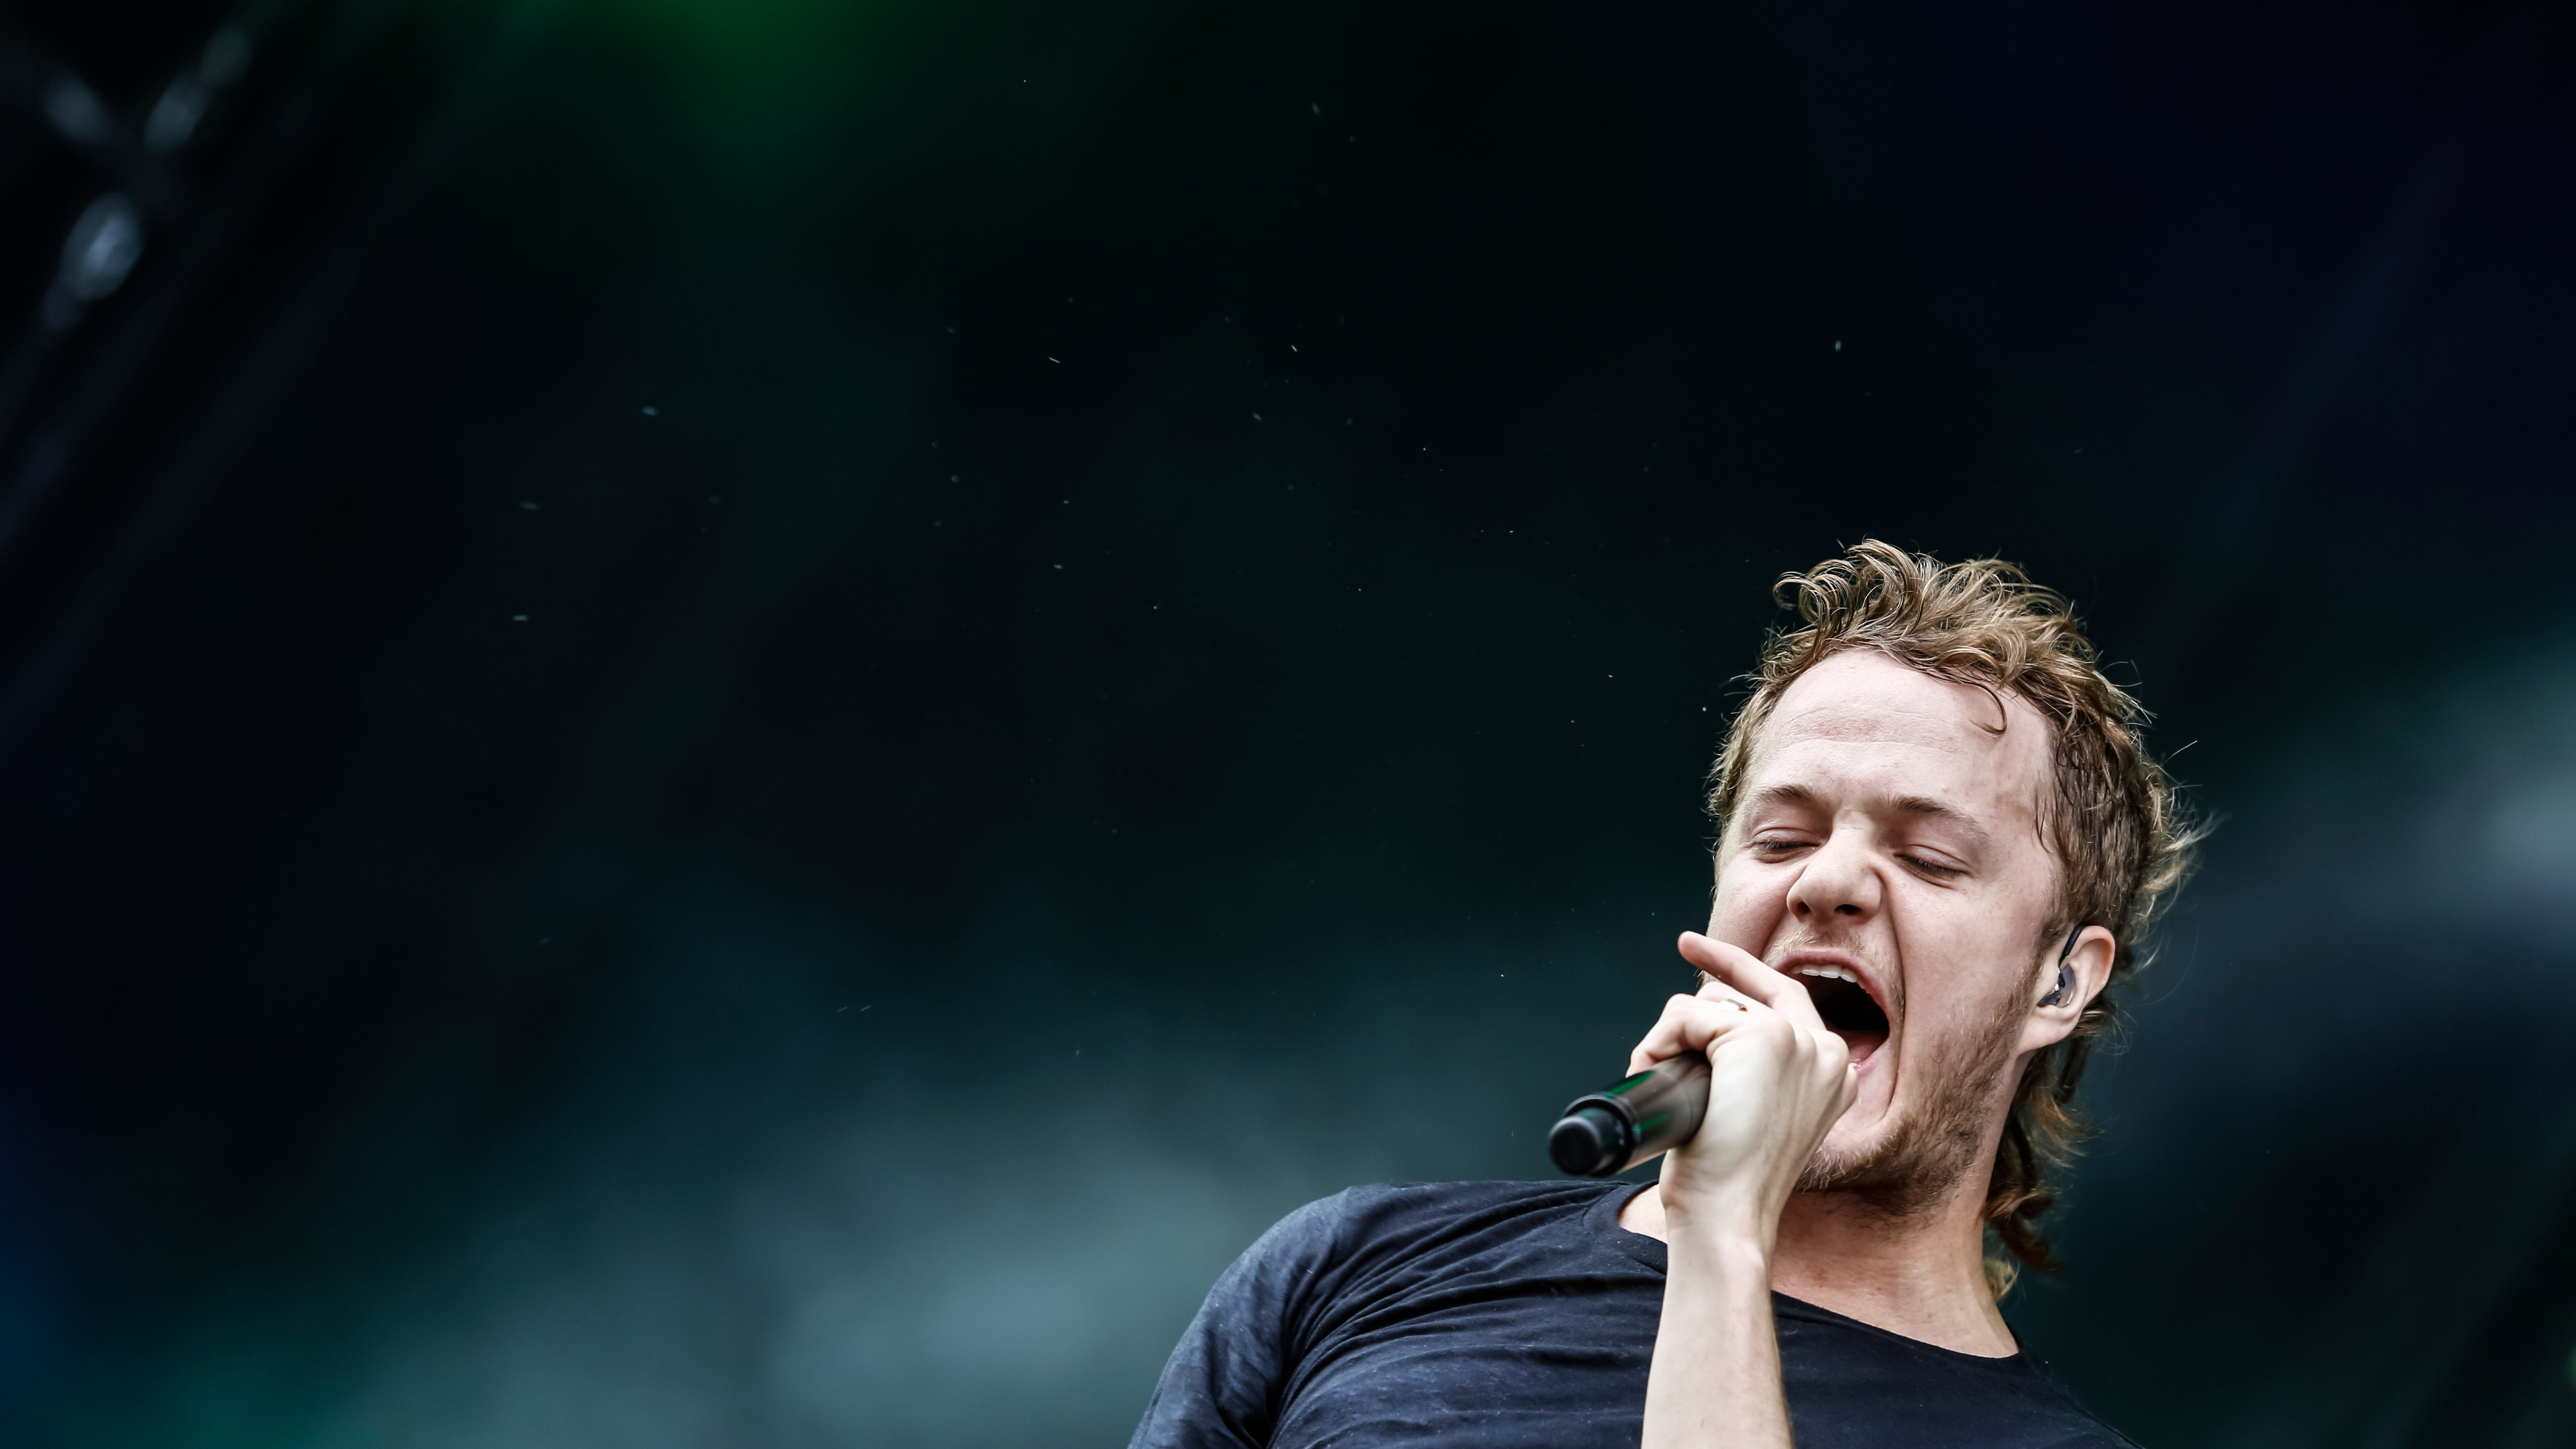 Hd Wallpaper Imagine Dragons Hd 356832 Hd Wallpaper